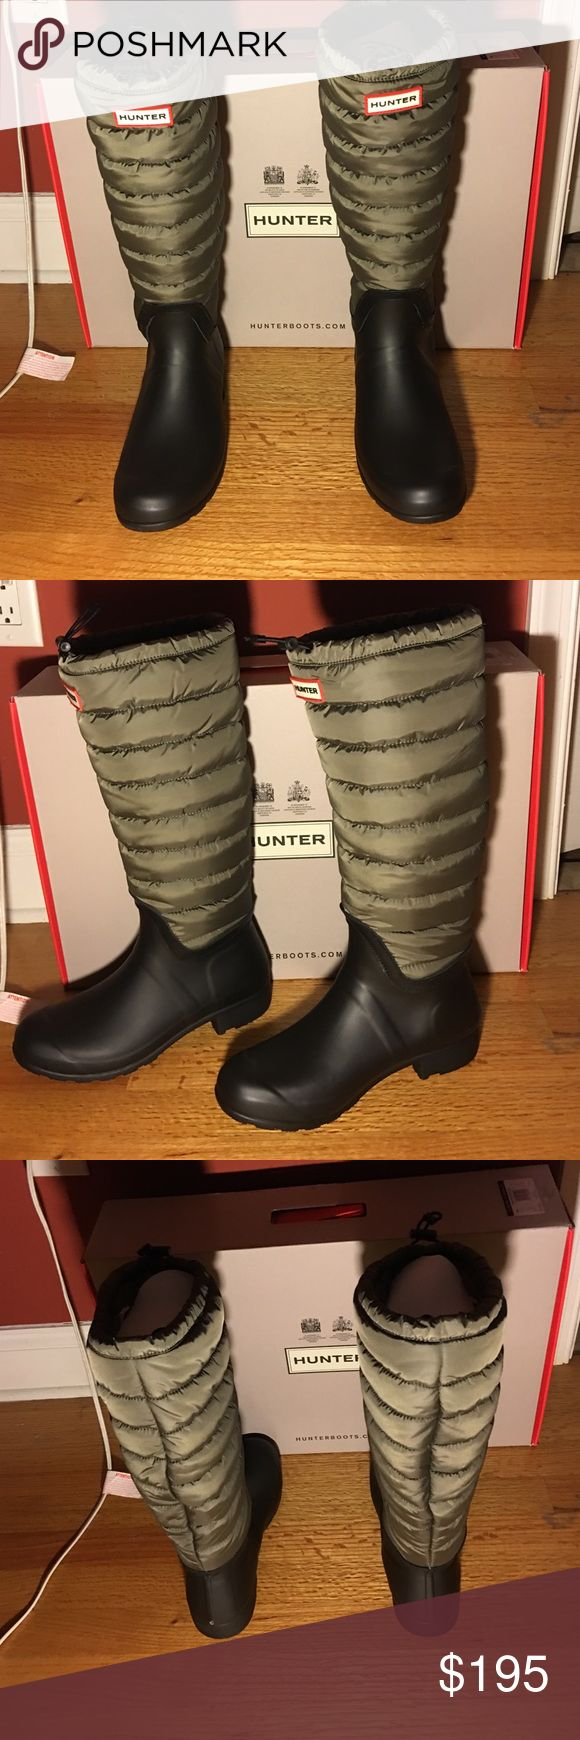 PRICE DROP‼️Hunter Original Tall Quilted BT. Swamp green/black. Brand new in box. Very cute warm boot. Sold out in stores. You can throw these boots over any piece of clothing. Size 9 US. Paid retail at Nordstrom. Will discount about $35-45 at most, as Posh takes a big chunk as is! These are all sold out!!! Especially this size(: I've discounted $60, so price is now firm. Thank you ladies Hunter Boots Shoes Winter & Rain Boots